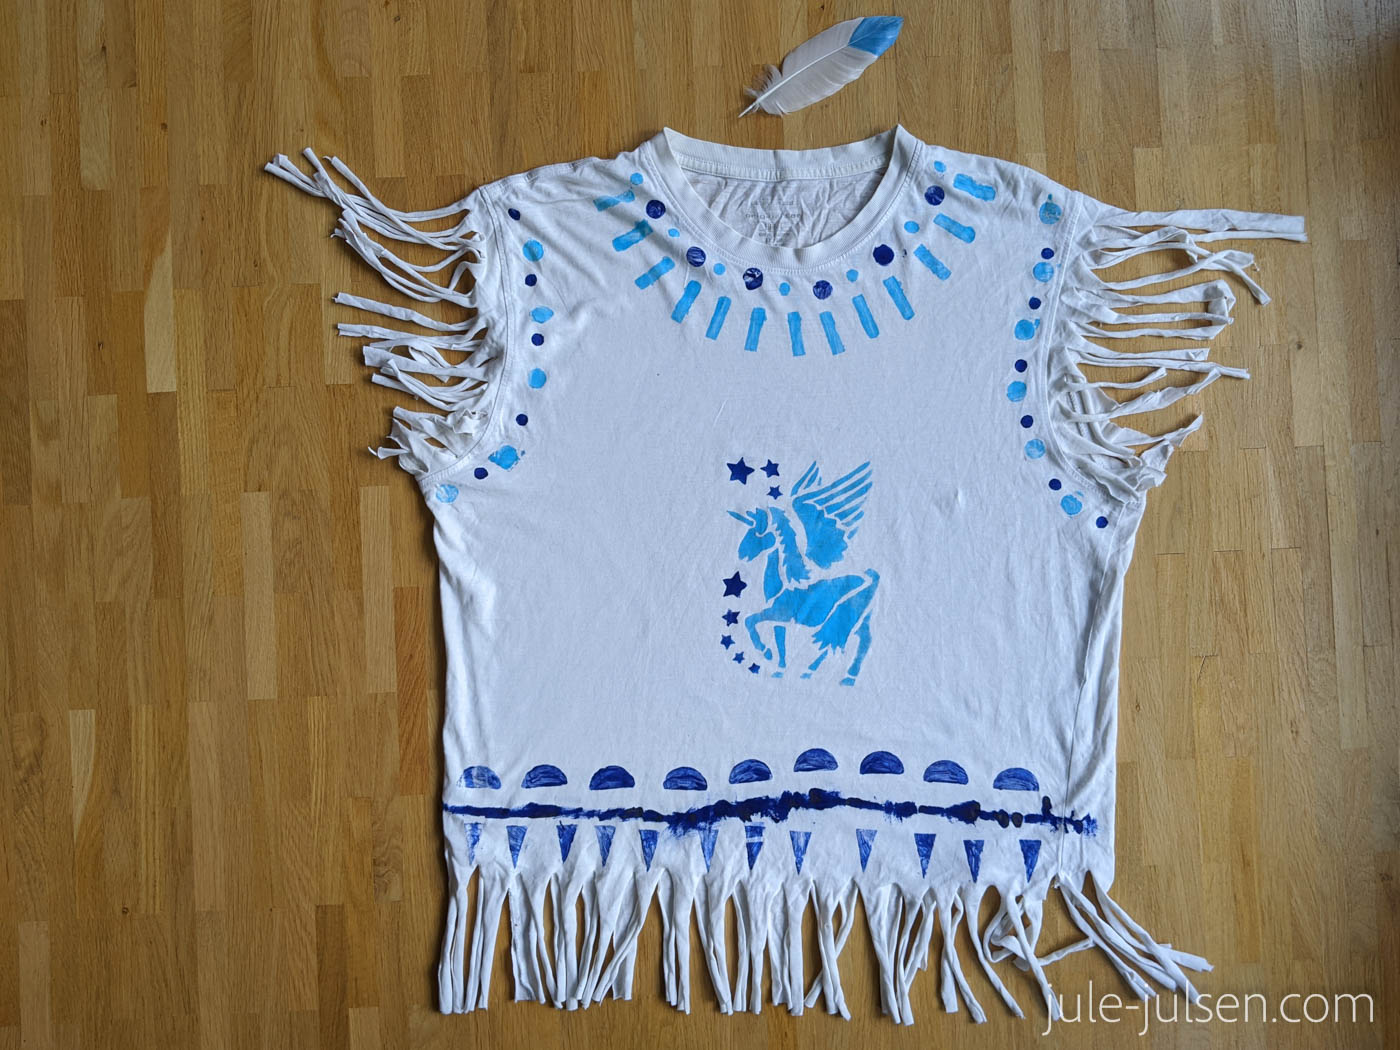 diy Faschingskostuem Indianer aus altem T-Shirt